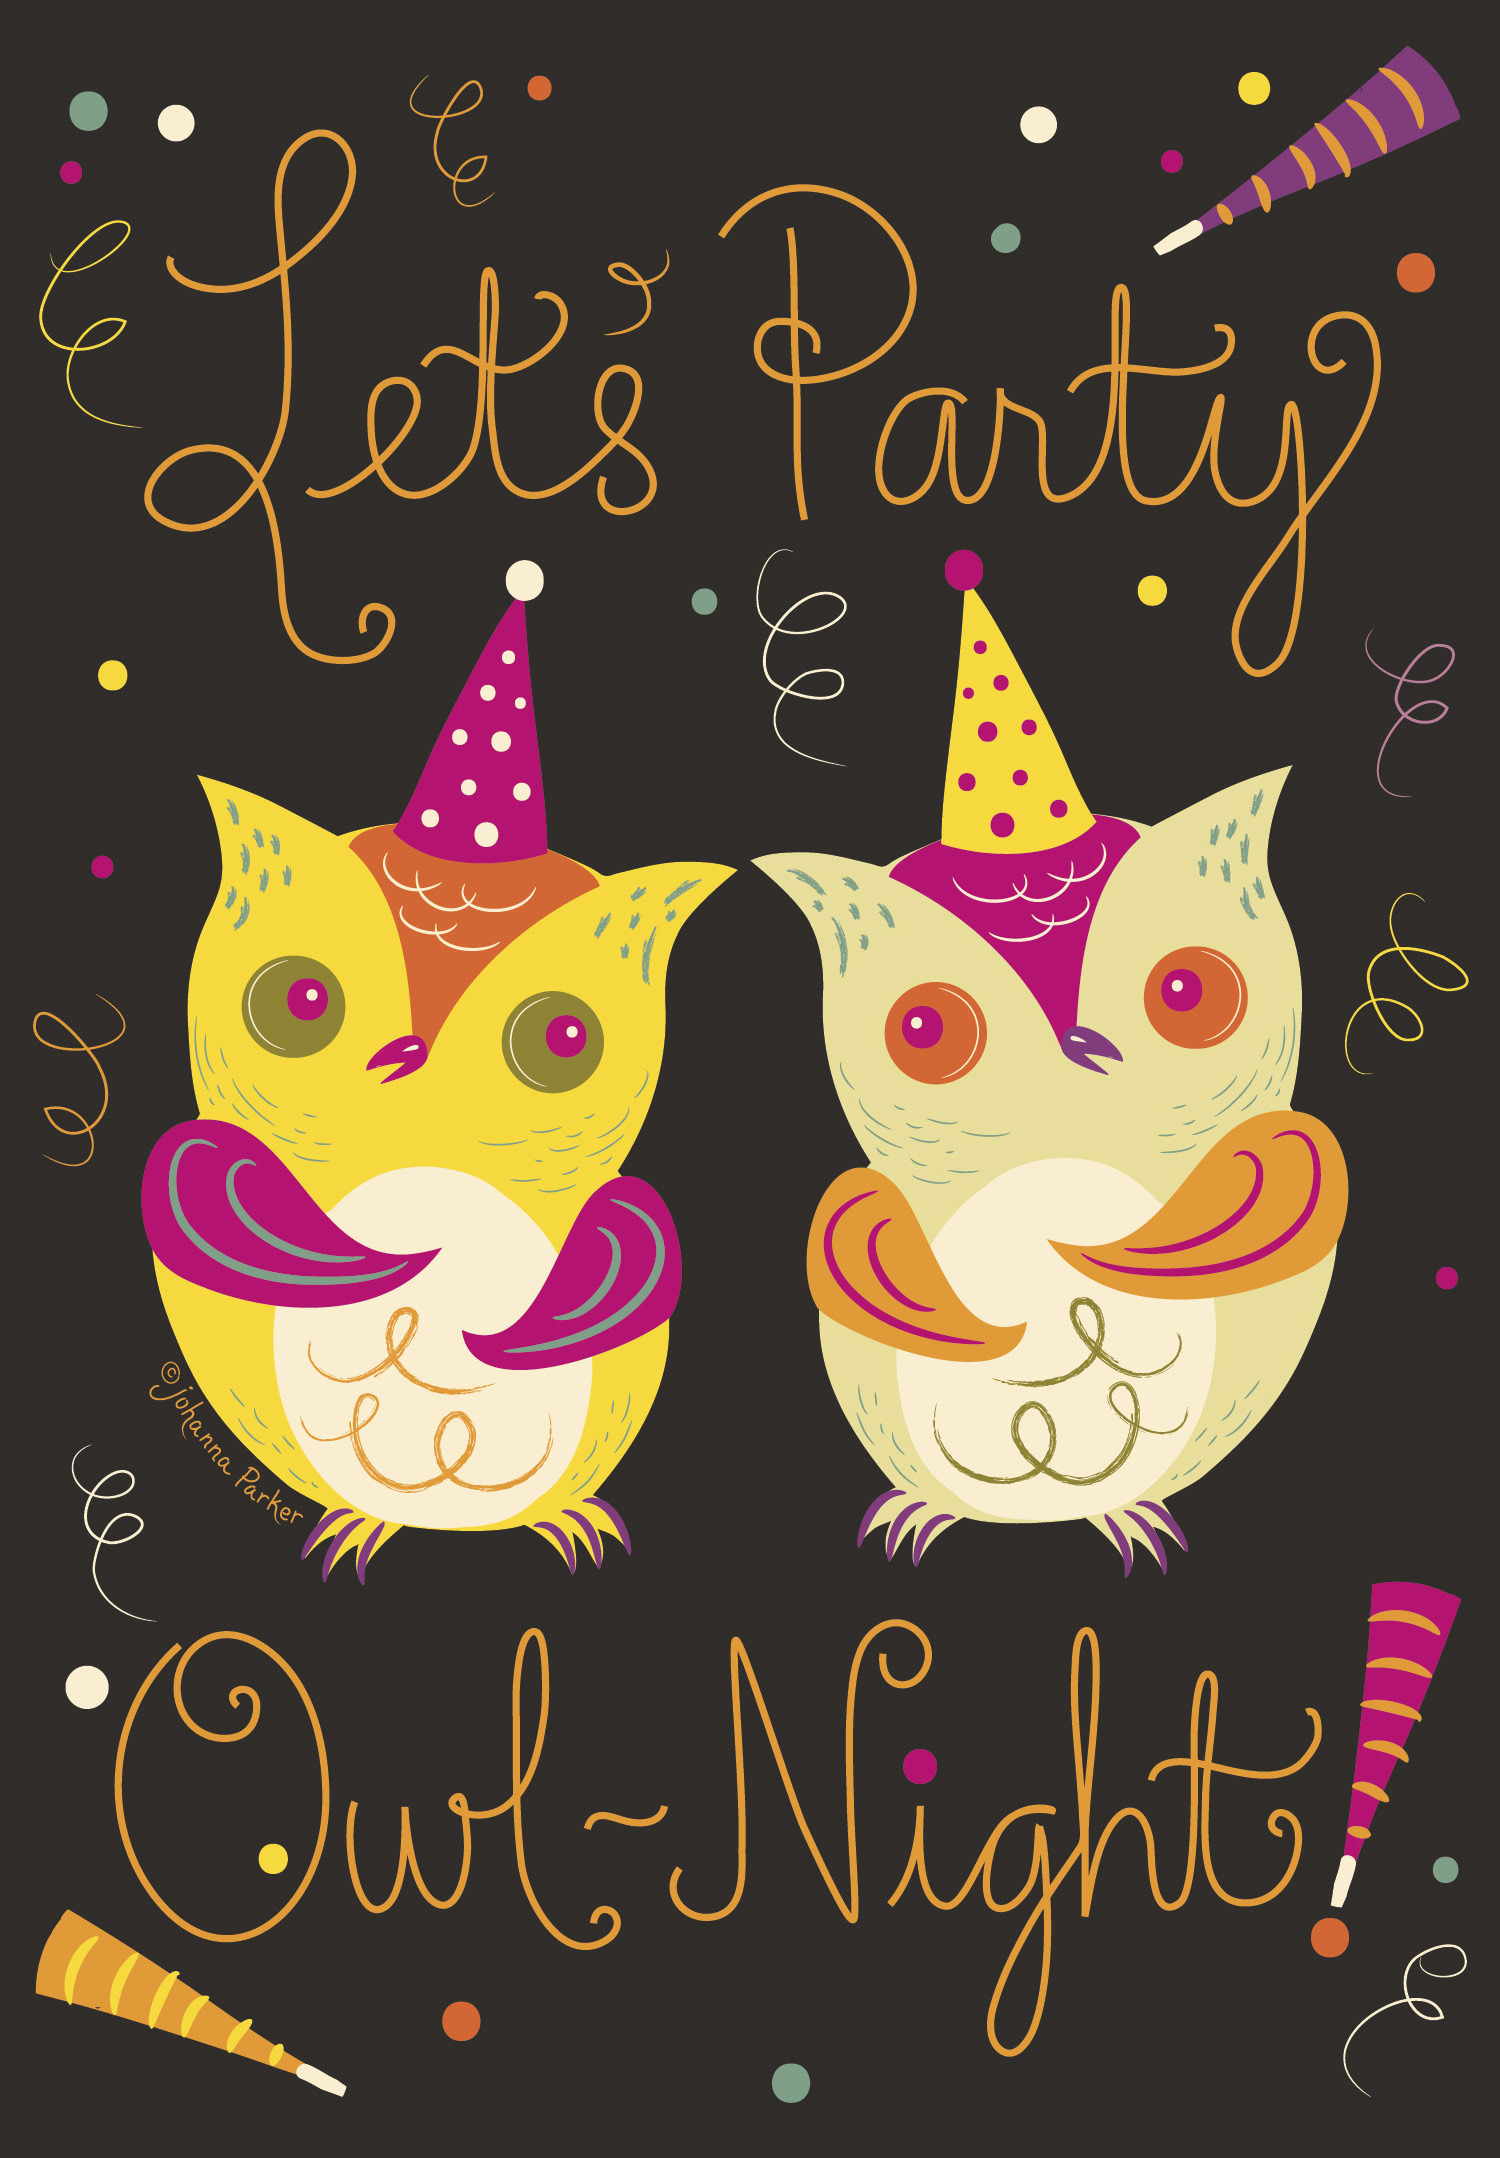 Let's party owl night